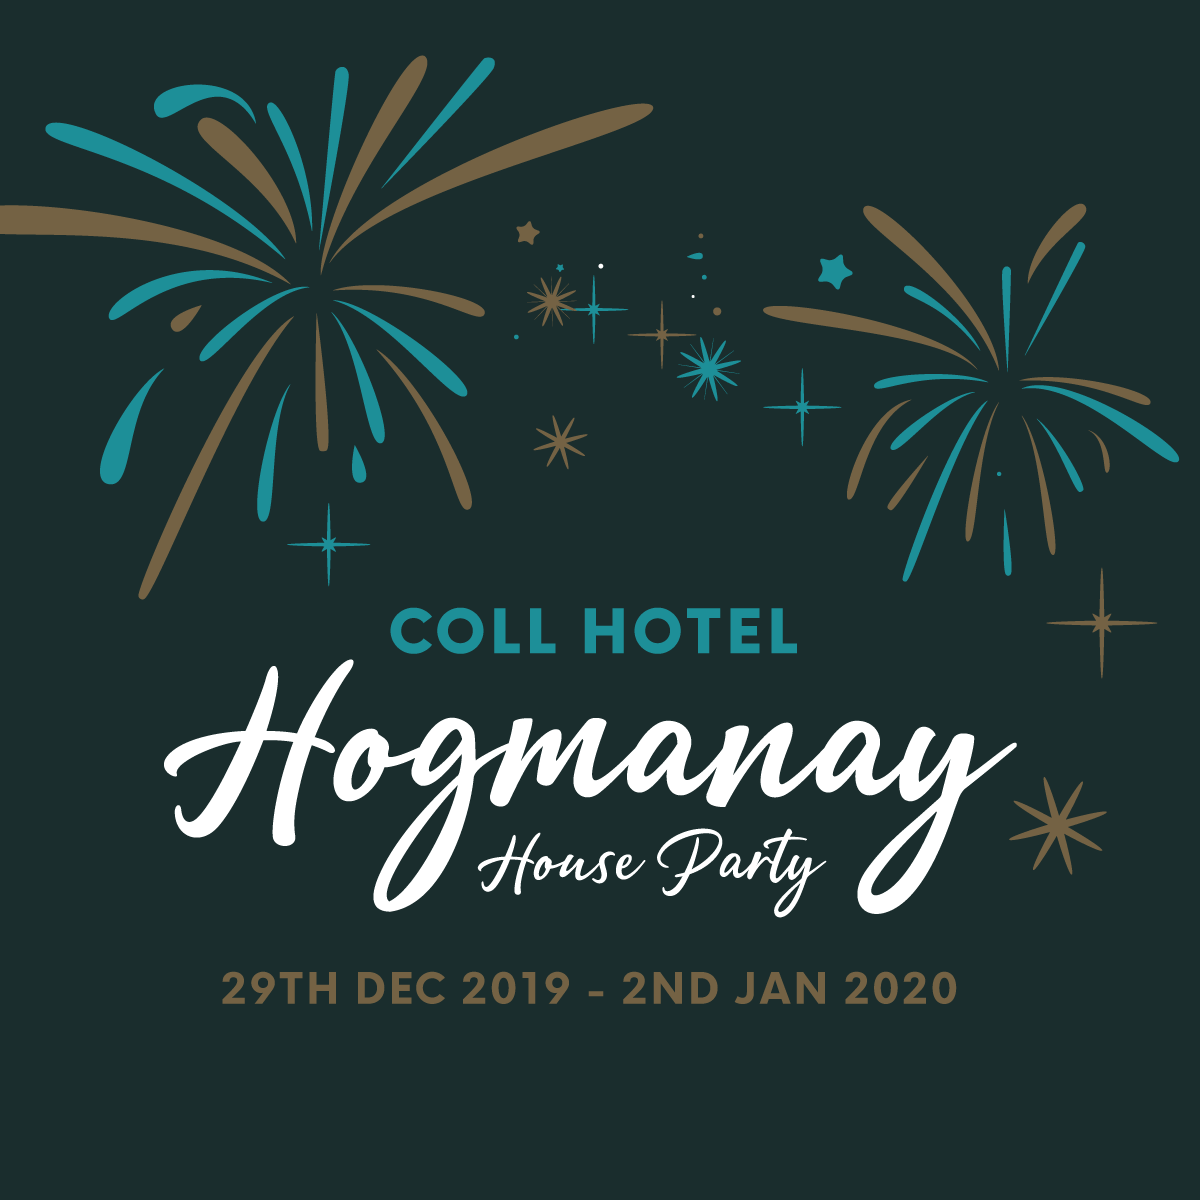 Coll Hotel Hogmanay House Party